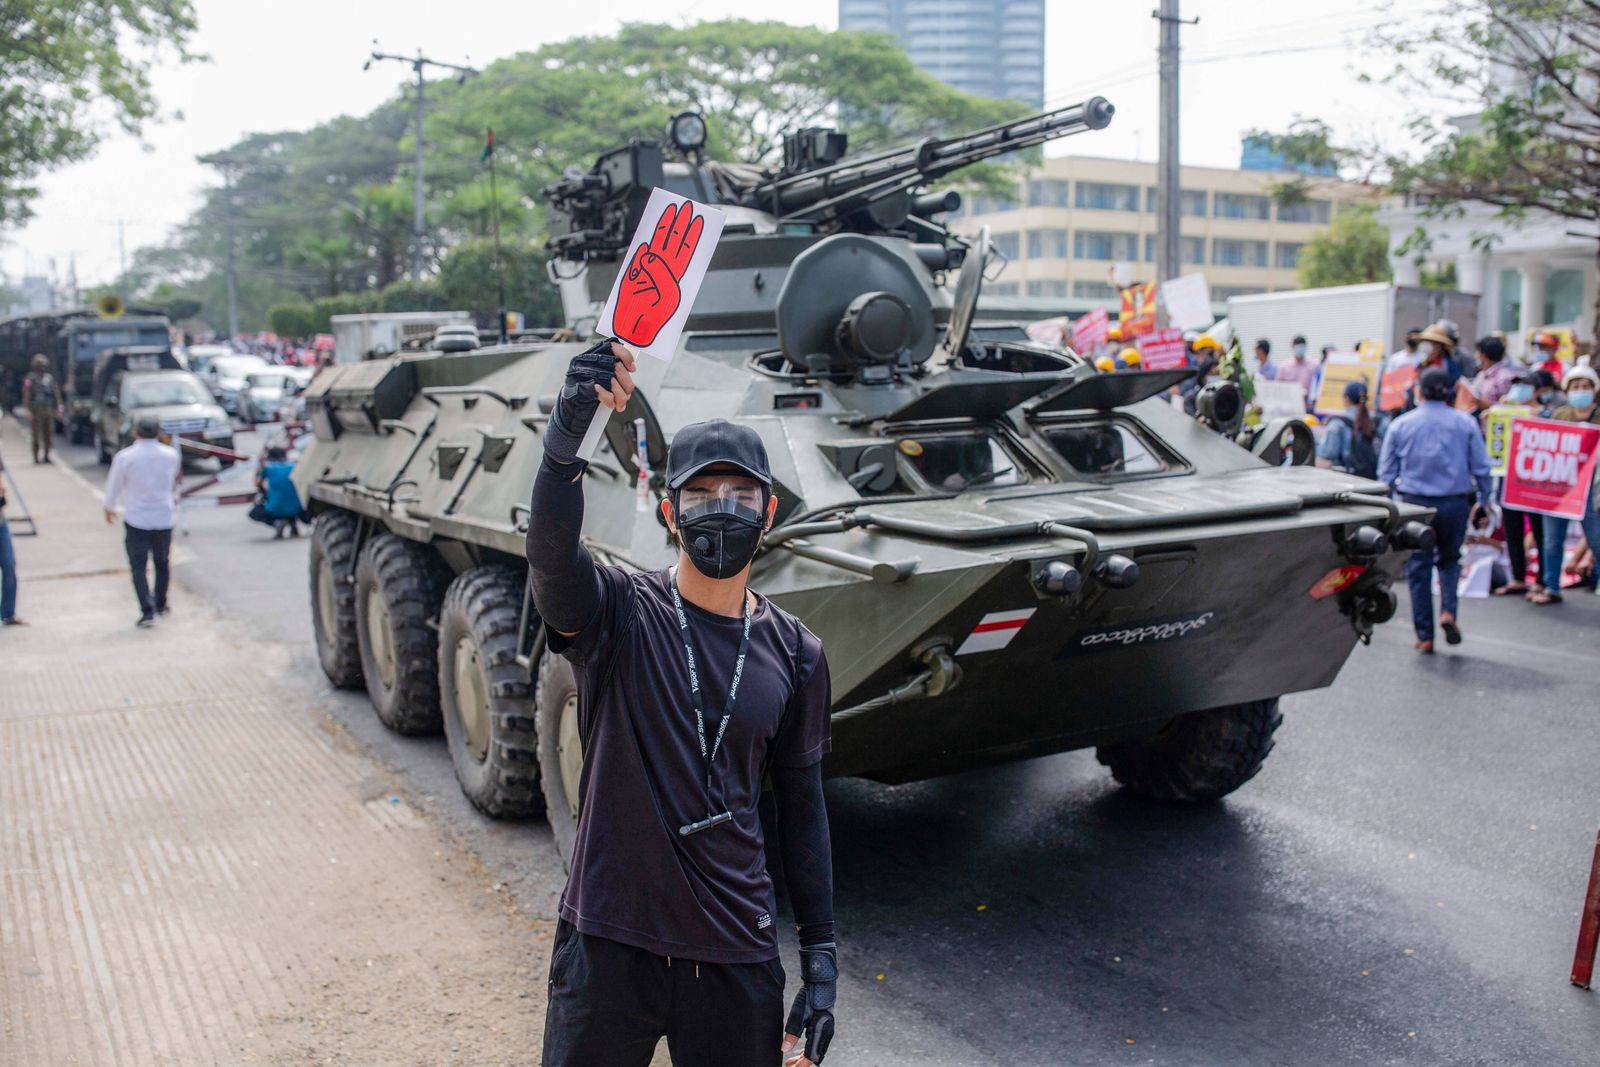 February 15, 2021, Yangon, Myanmar: A protester holds a placard with a three-finger salute in front of a military tank